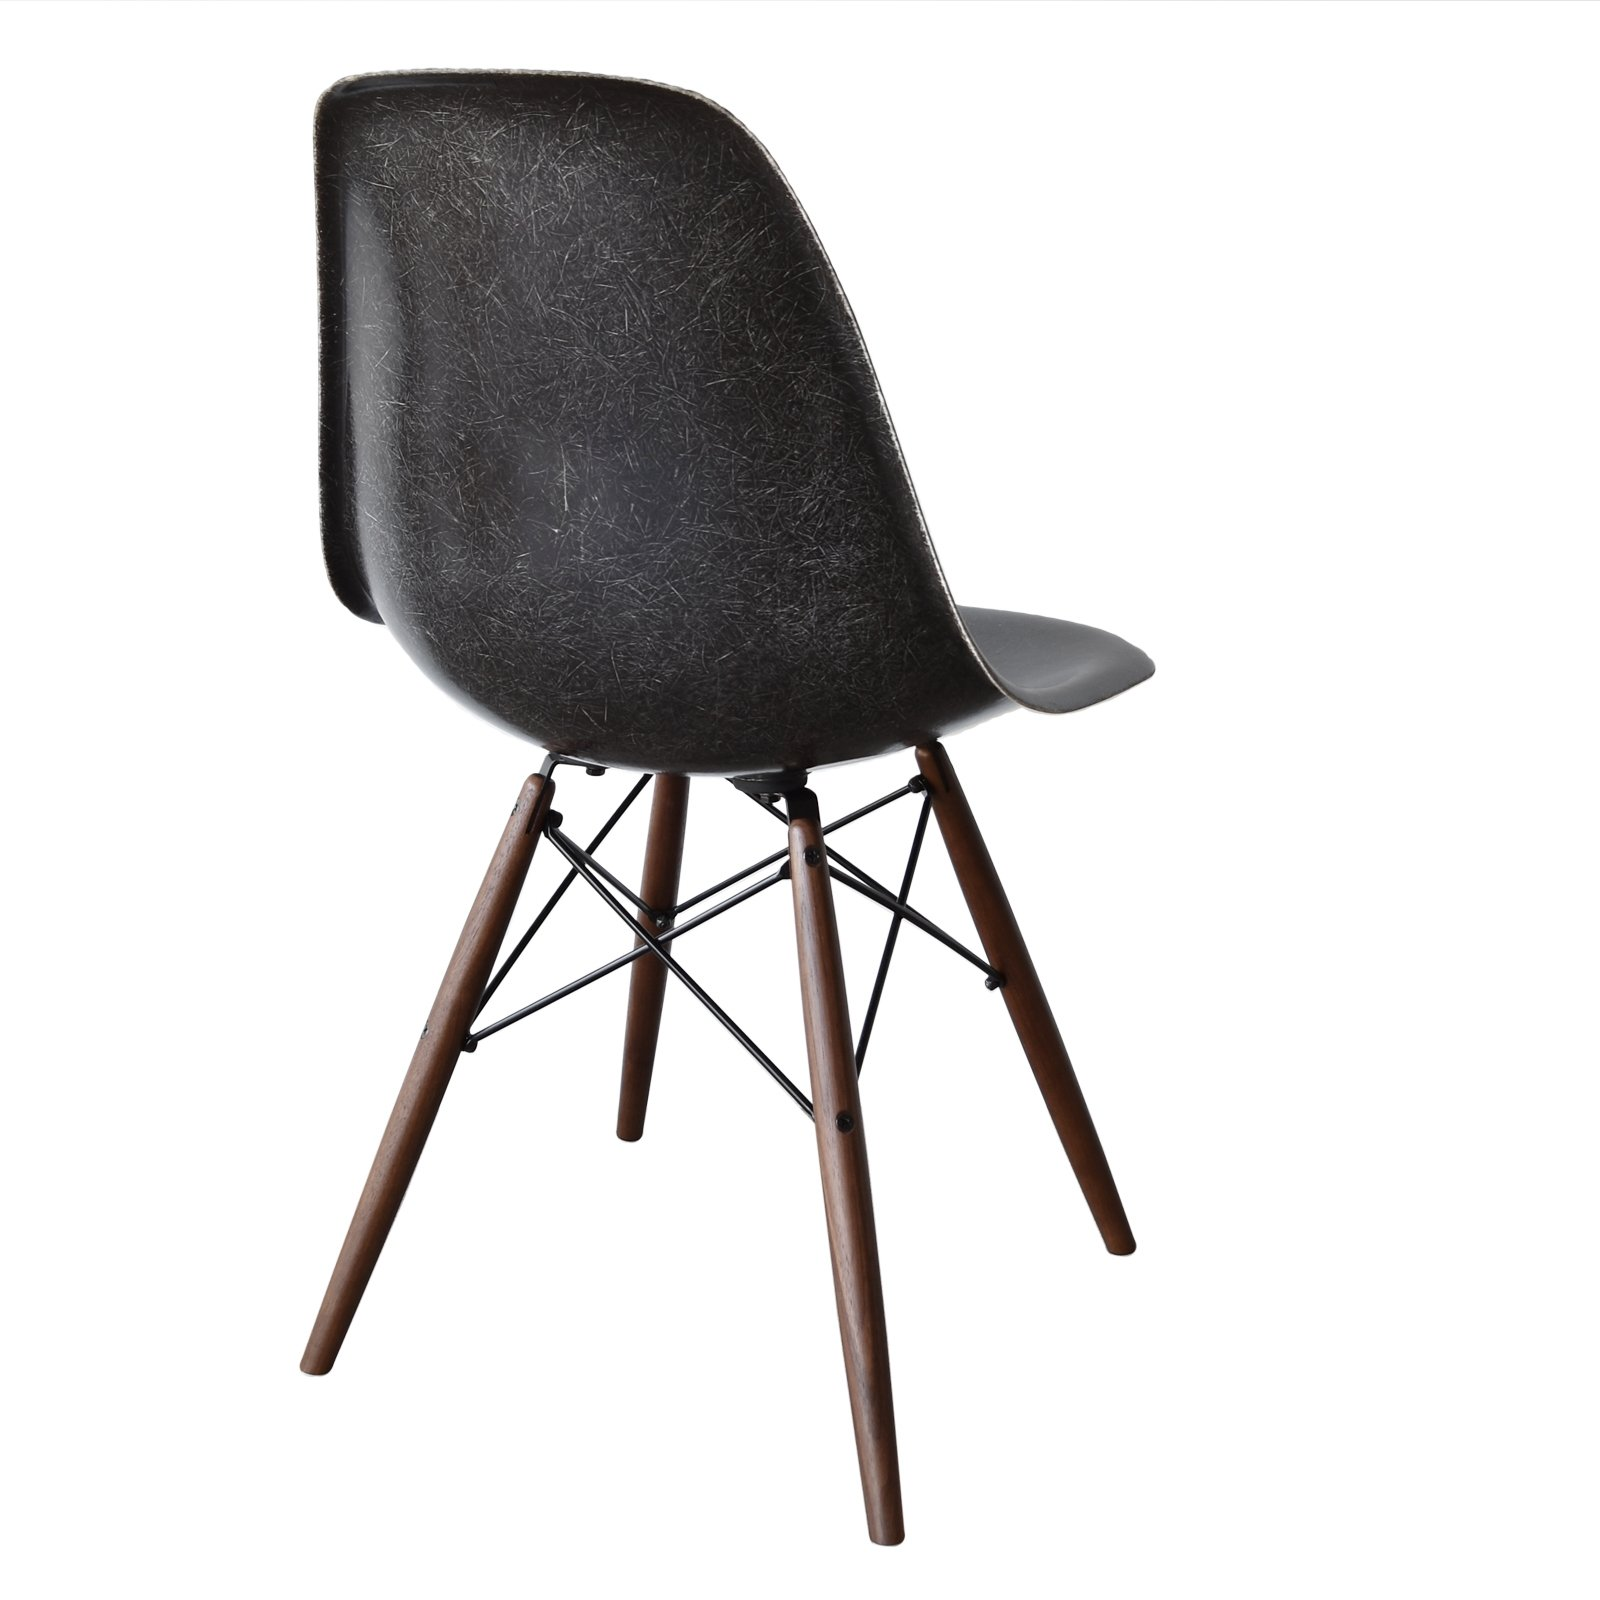 Dsw black dinner chair by charles ray eames for herman miller 1960s - Herman miller chair eames ...